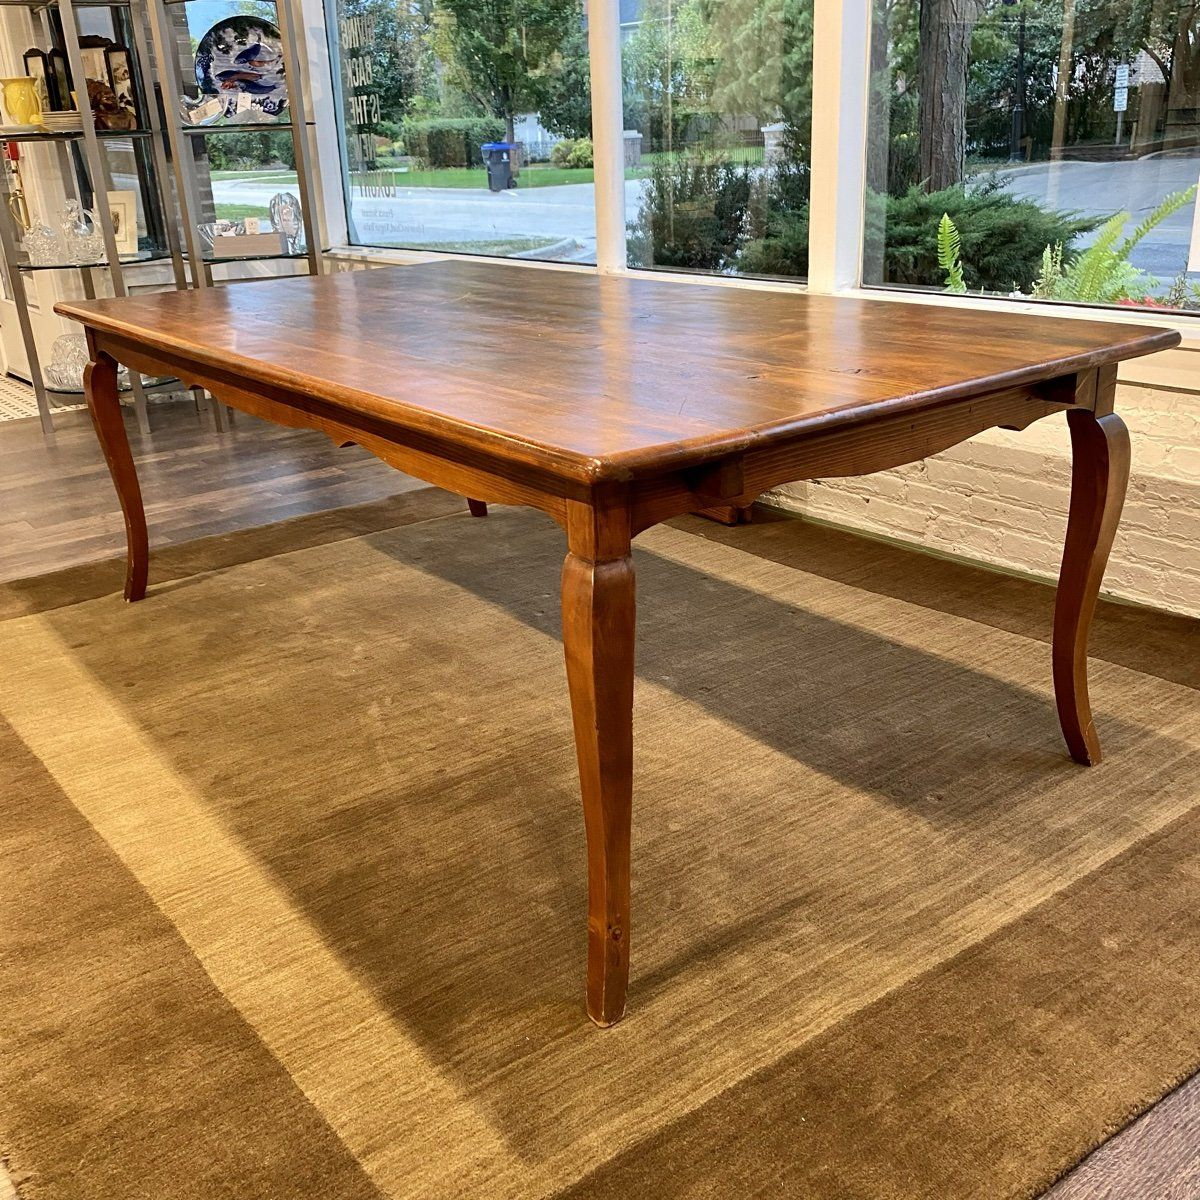 Mig and Tig Brown Dining Table - Brown / 88 x 44 x 30